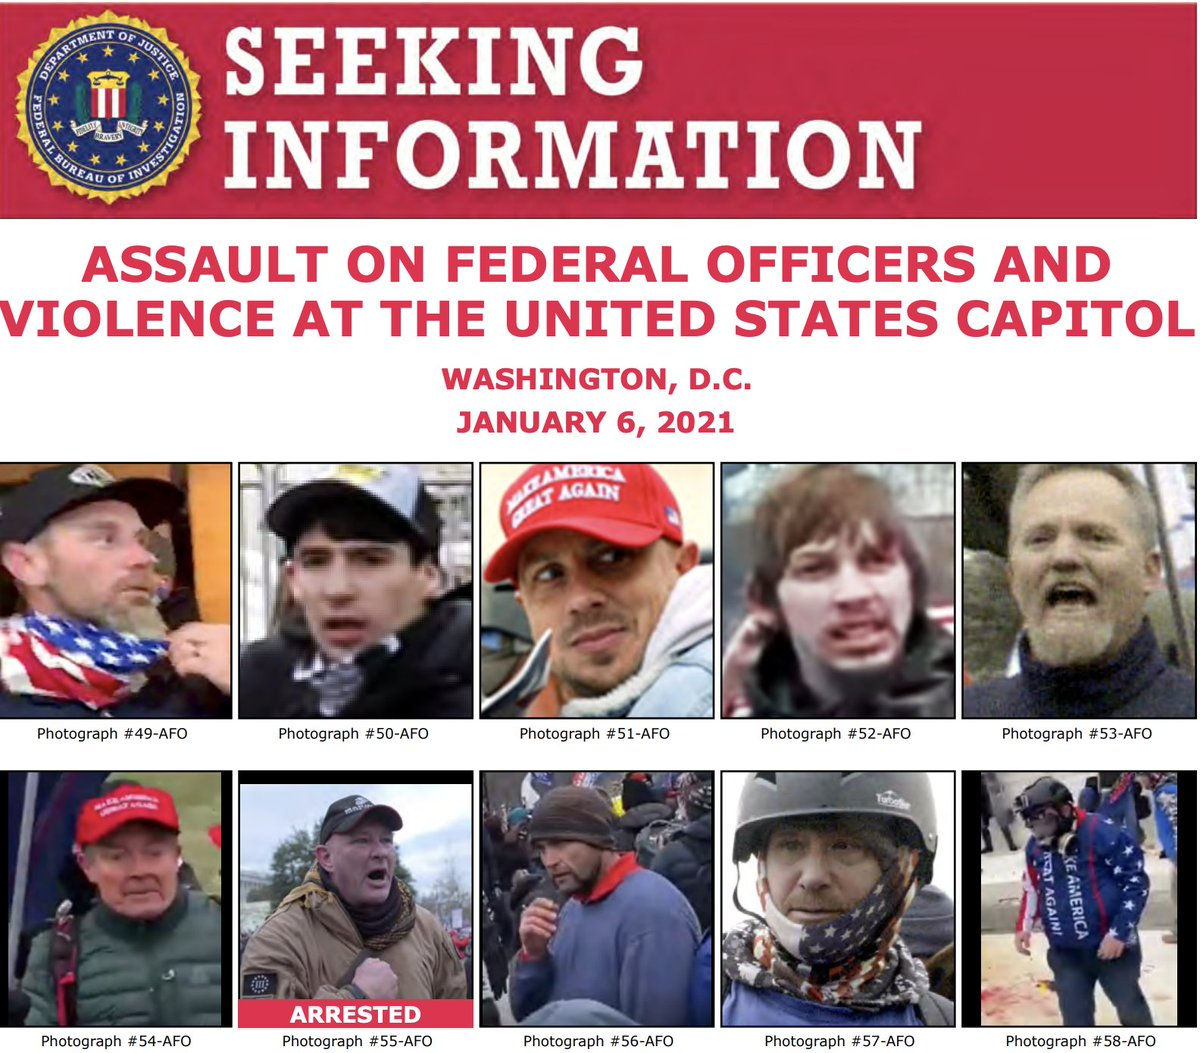 The #FBI has updated some of our seeking information posters with better photos of unidentified individuals. If you have a tip related to the violence at the U.S. Capitol on January 6, submit it to . @FBIWFO